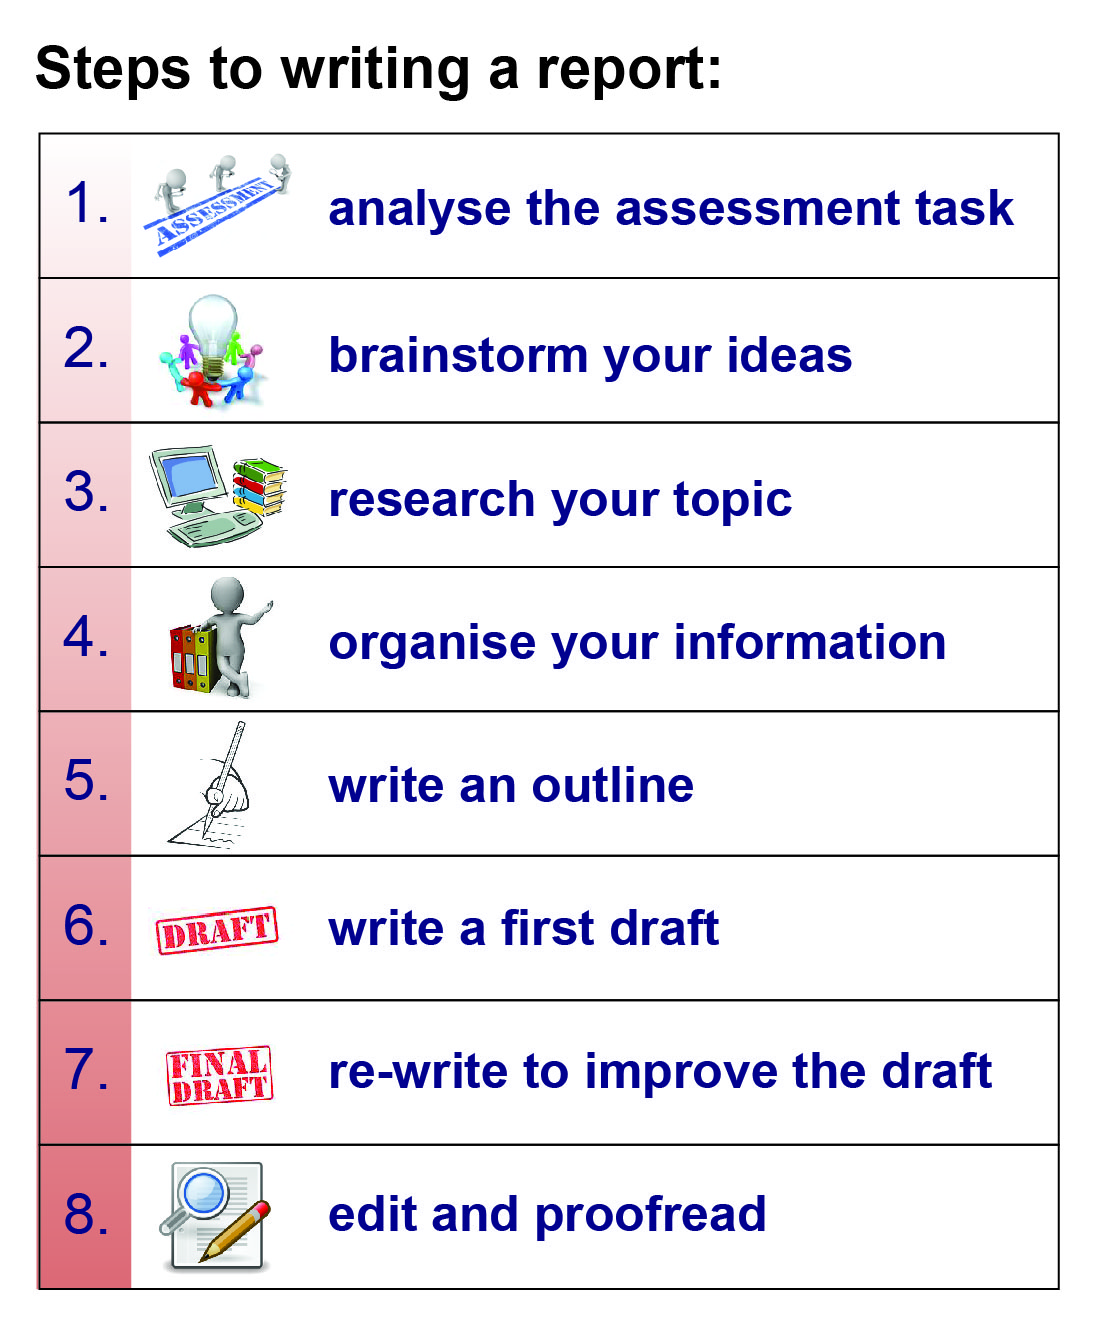 Steps to writing a report